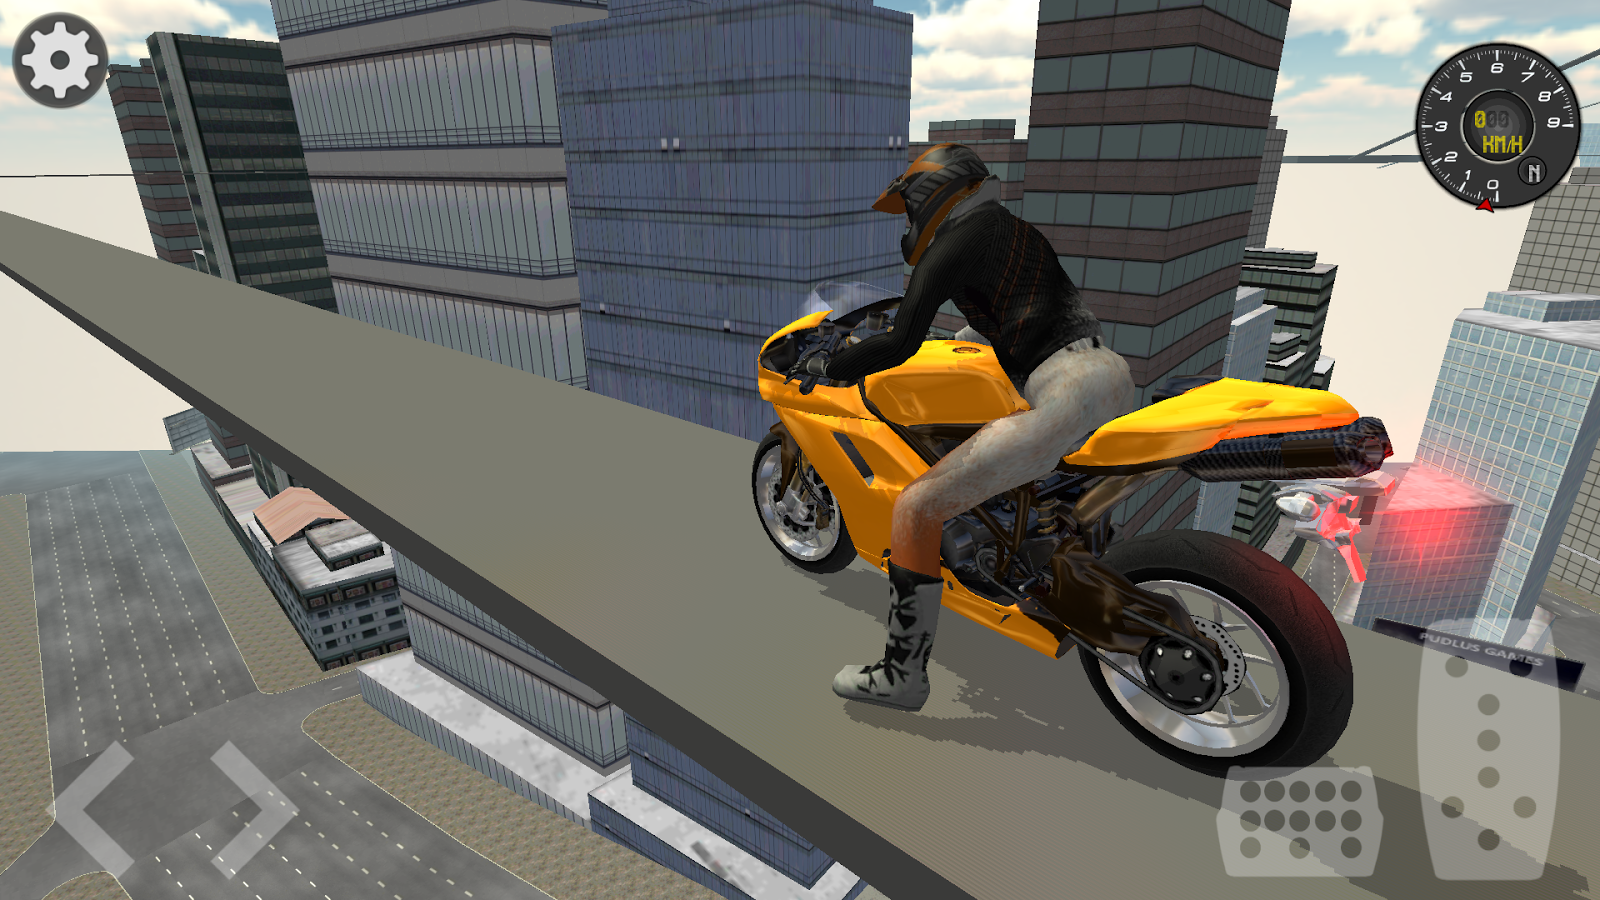 Motor Bike Crush Simulator 3d Android Apps On Google Play